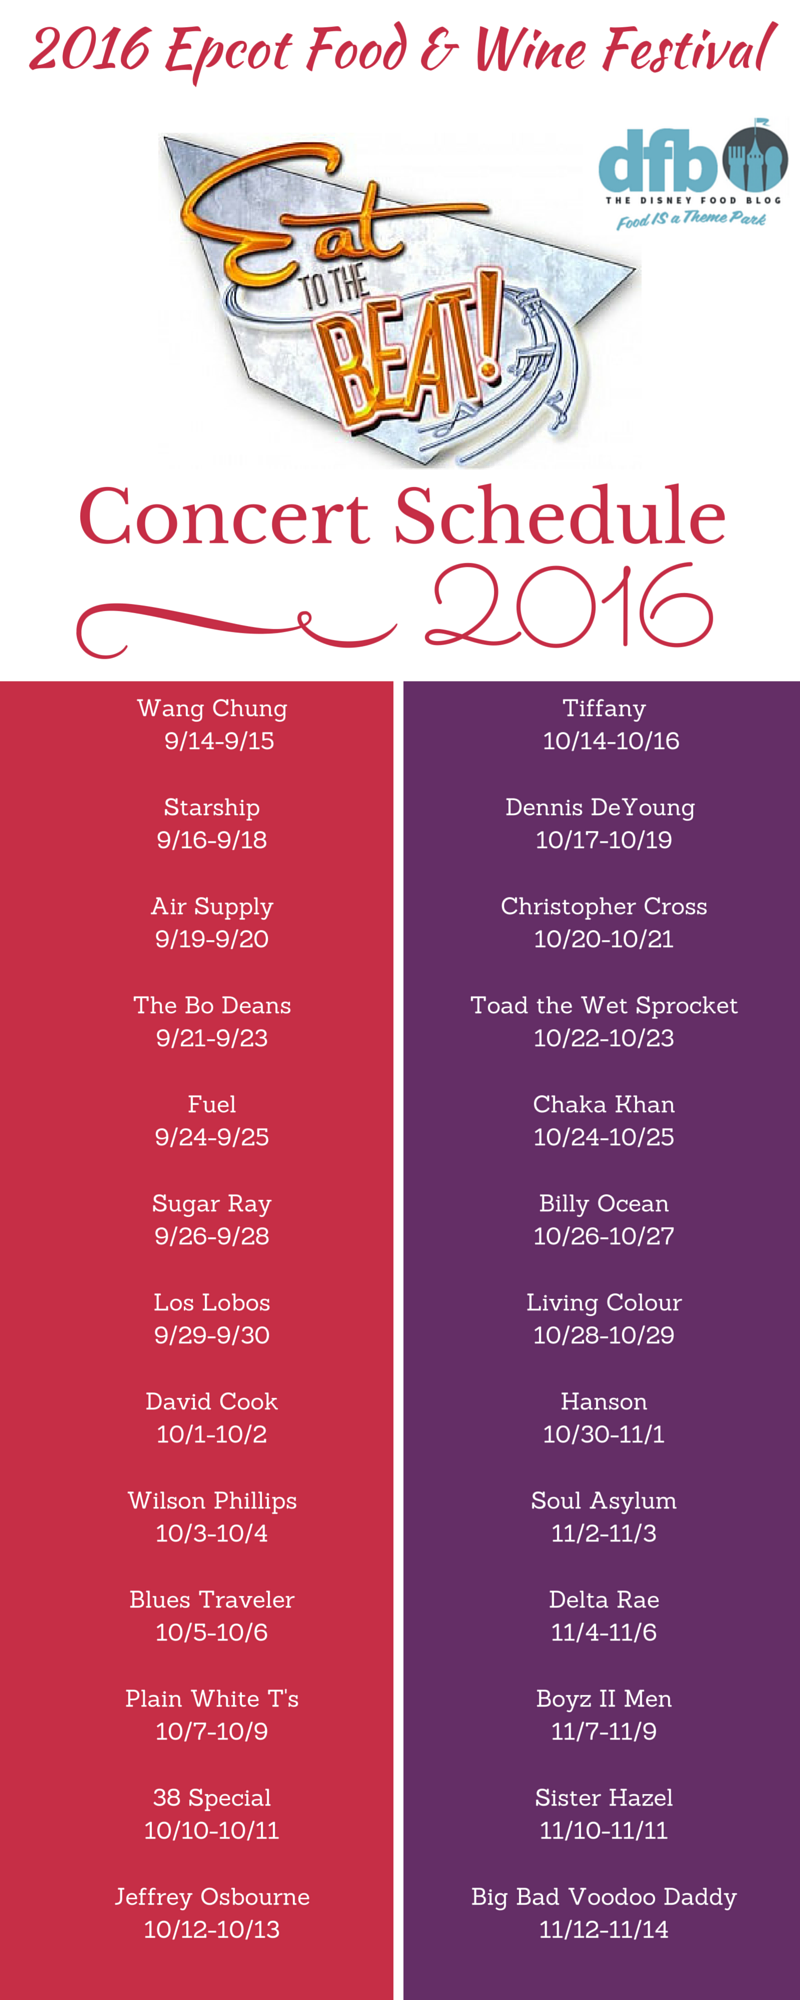 2016 Epcot Food and Wine Festival Eat to the Beat Concert Schedule!